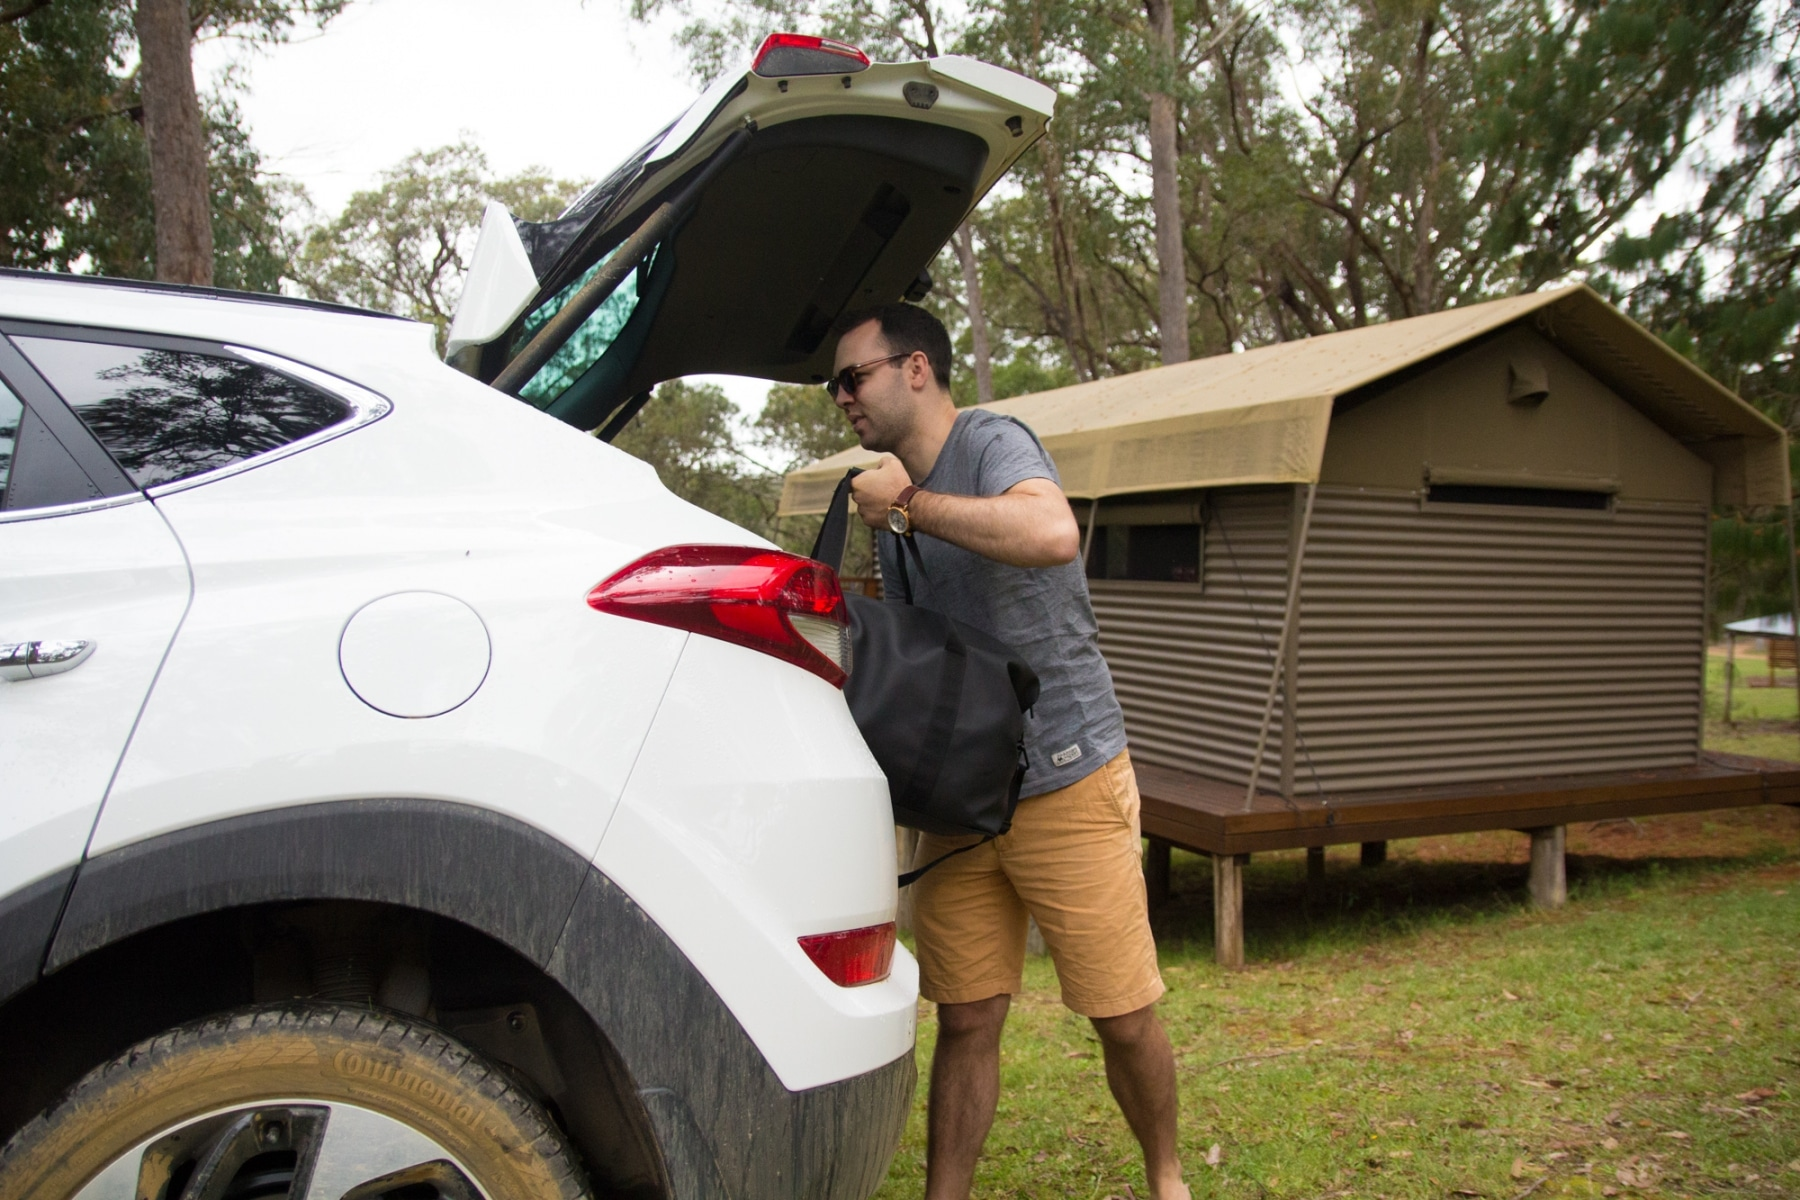 glamping luxury meets nature car open trunk